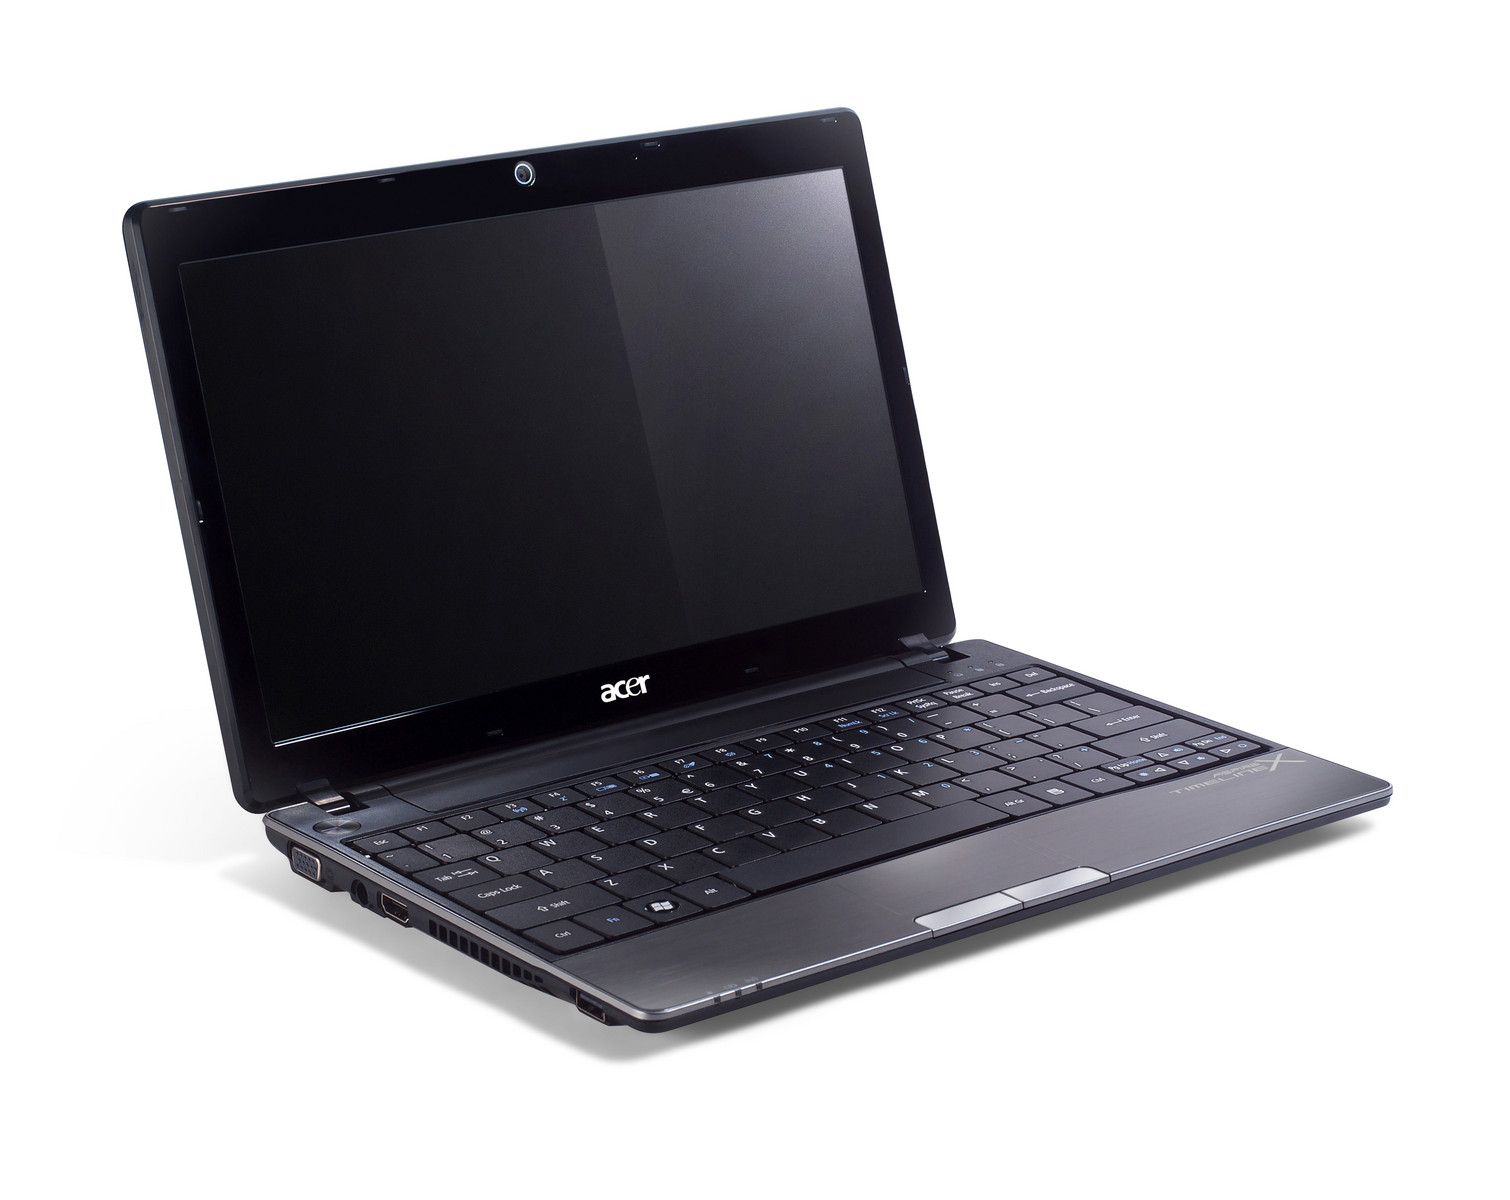 Drivers for Acer Aspire 1830 TimelineX Notebook Intel VGA